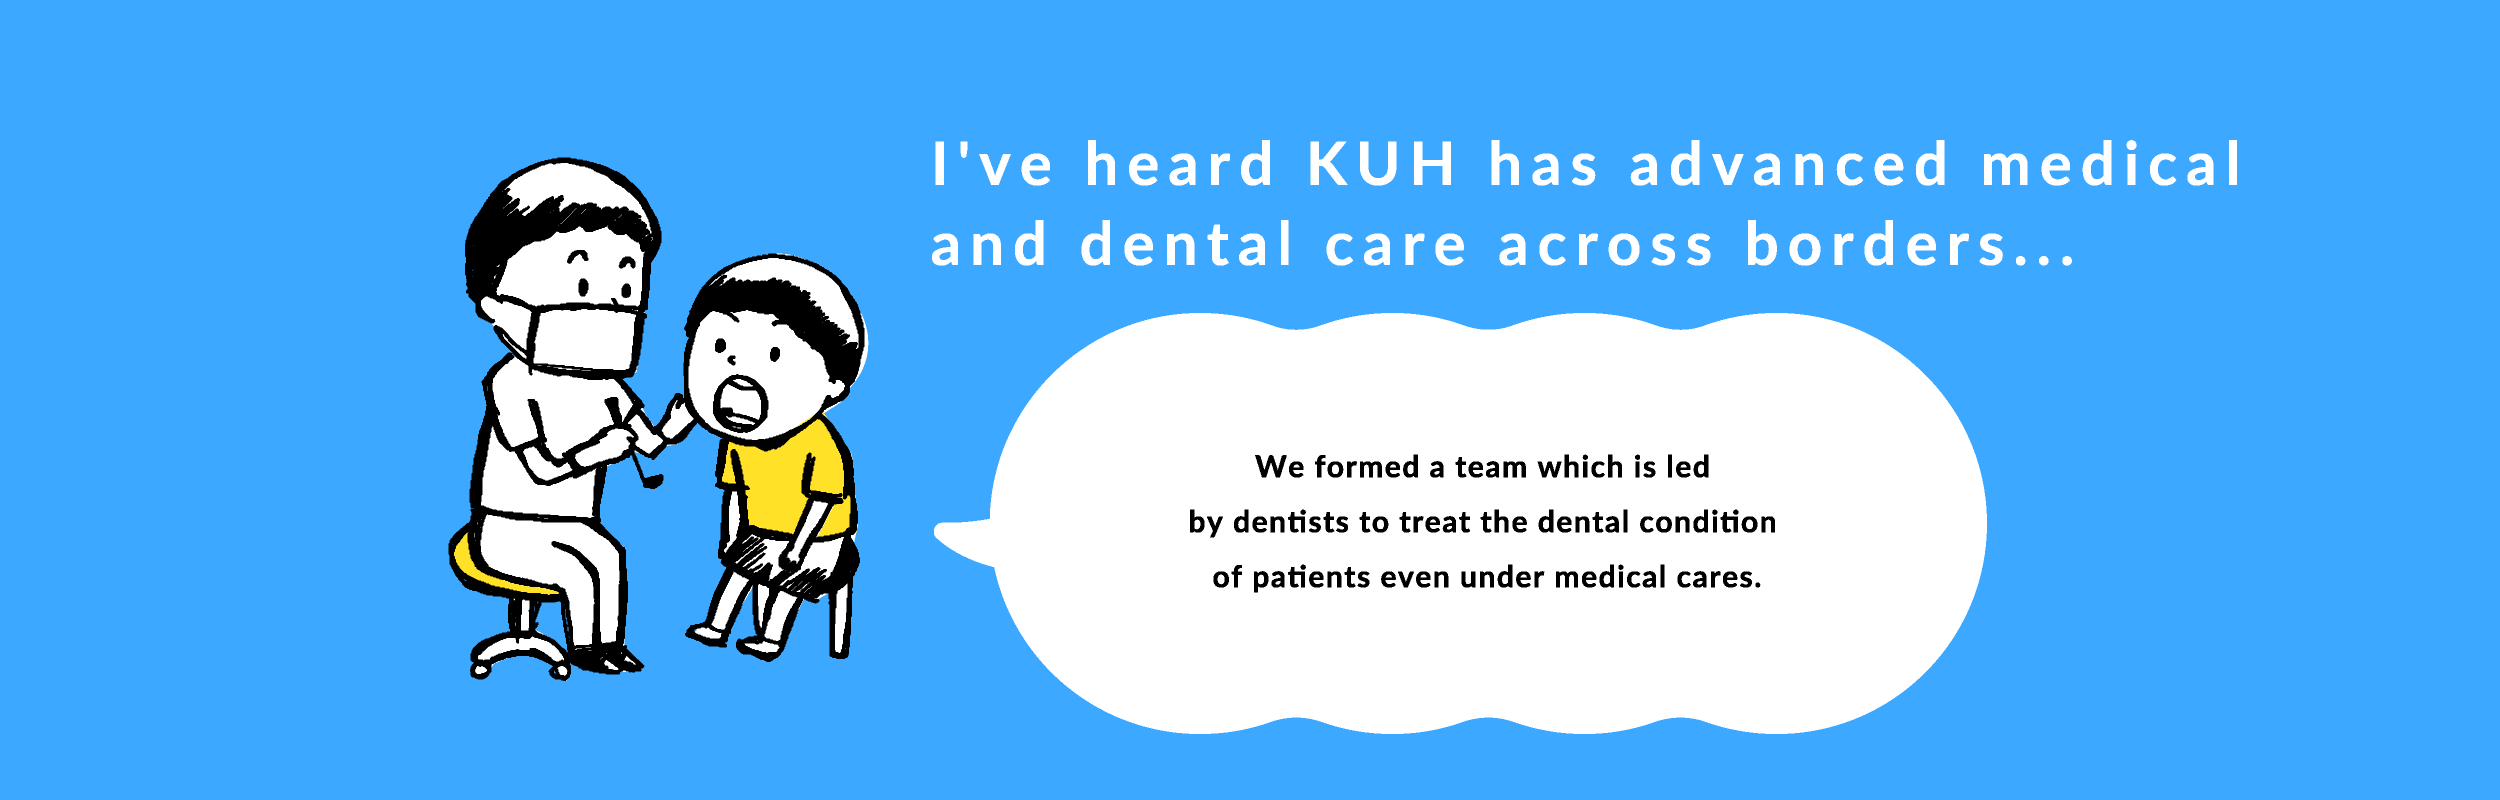 We formed a team which is led by dentists to treat the dental condition of patients even under medical cares.